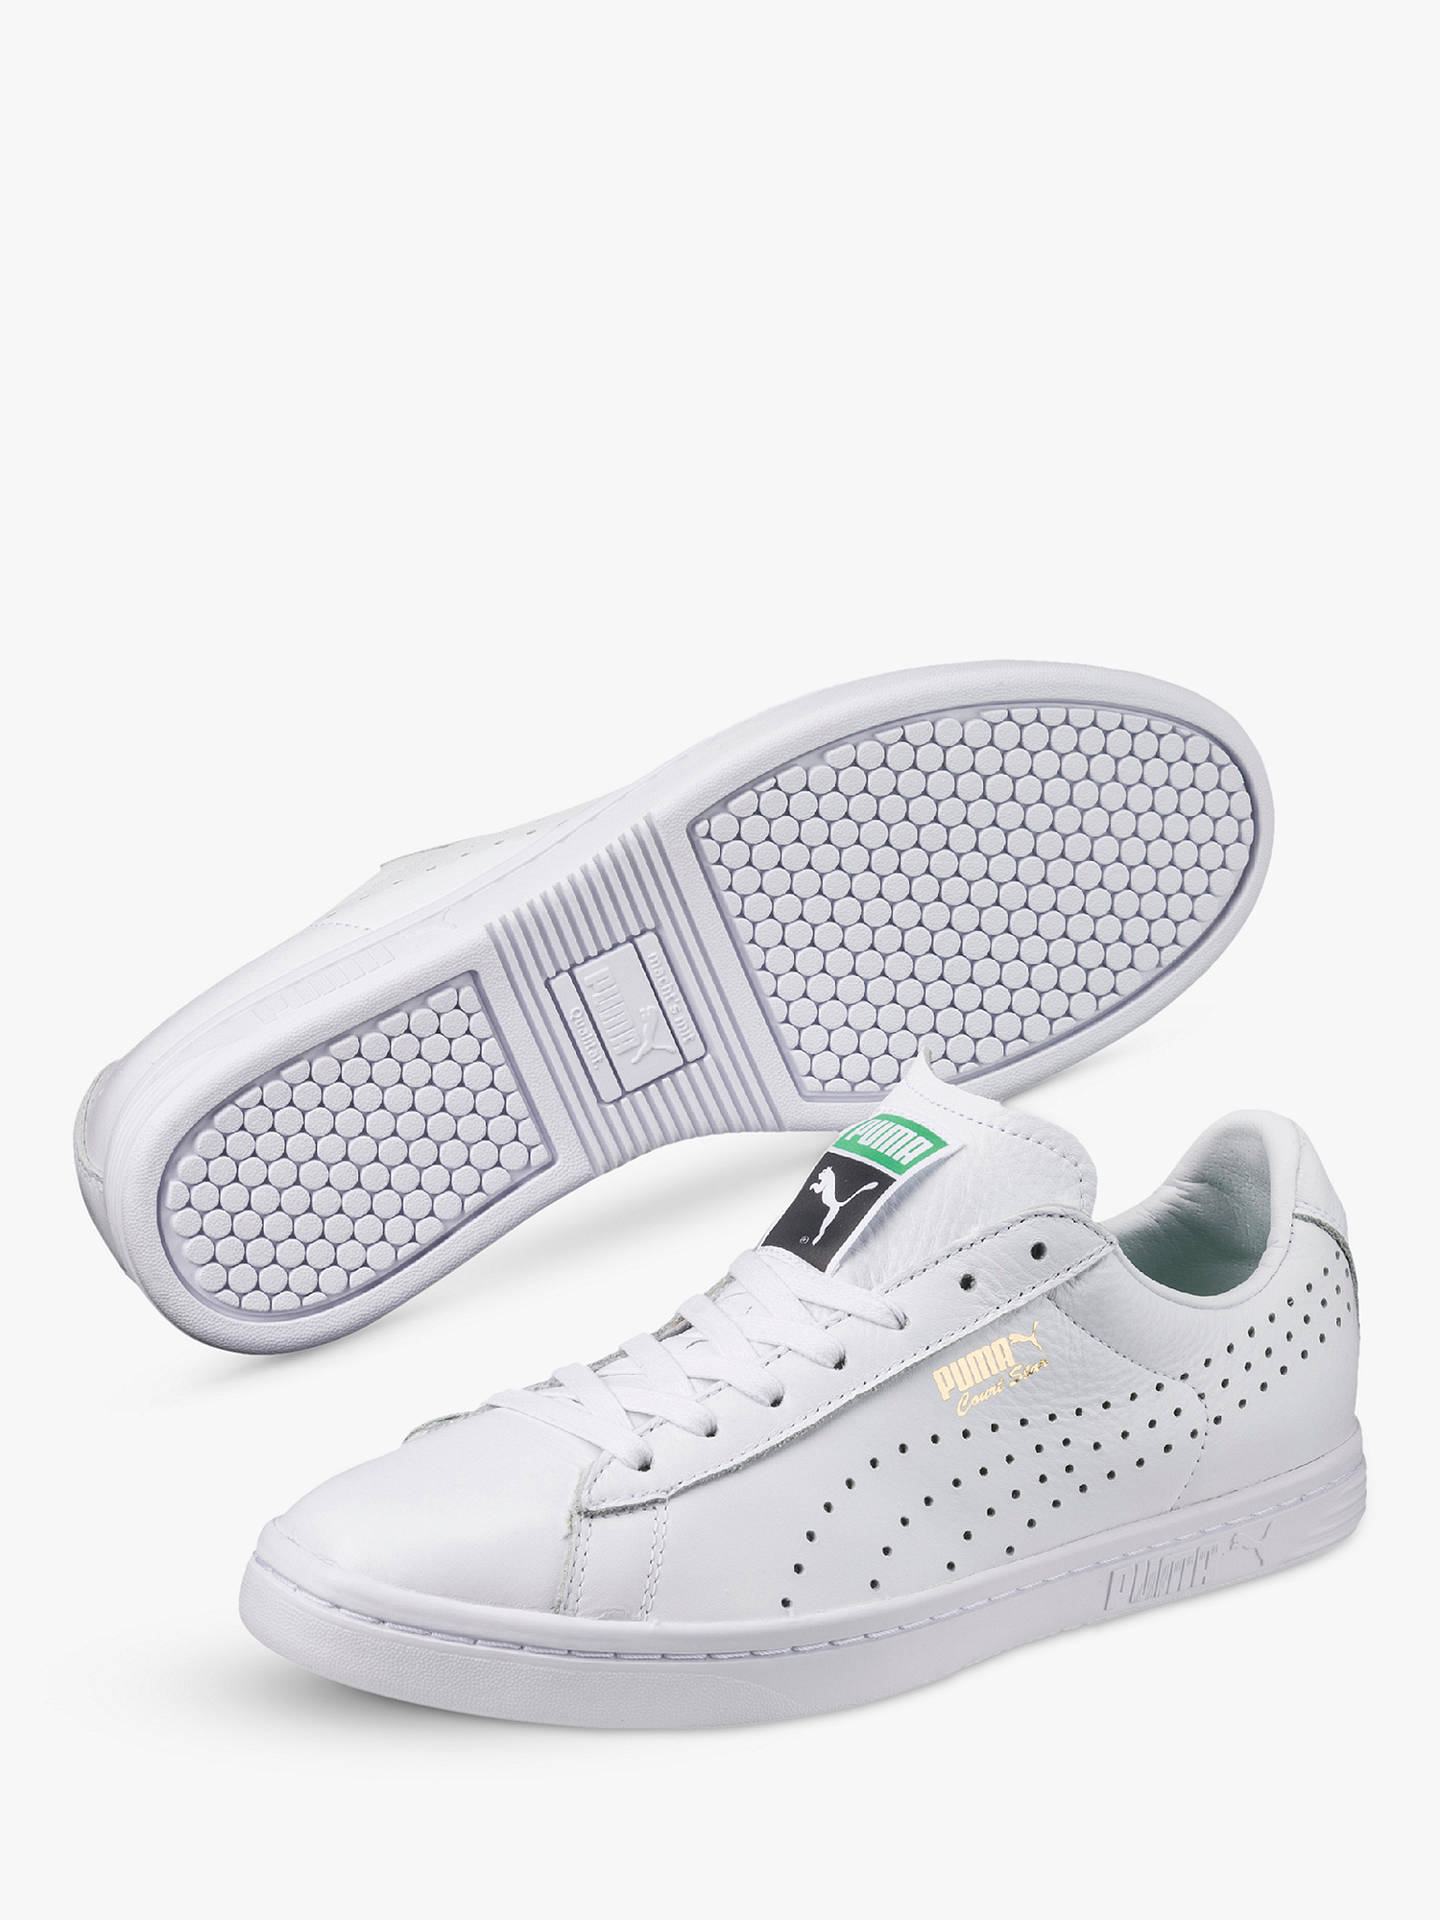 PUMA Court Star Sneakers Mens Trainers